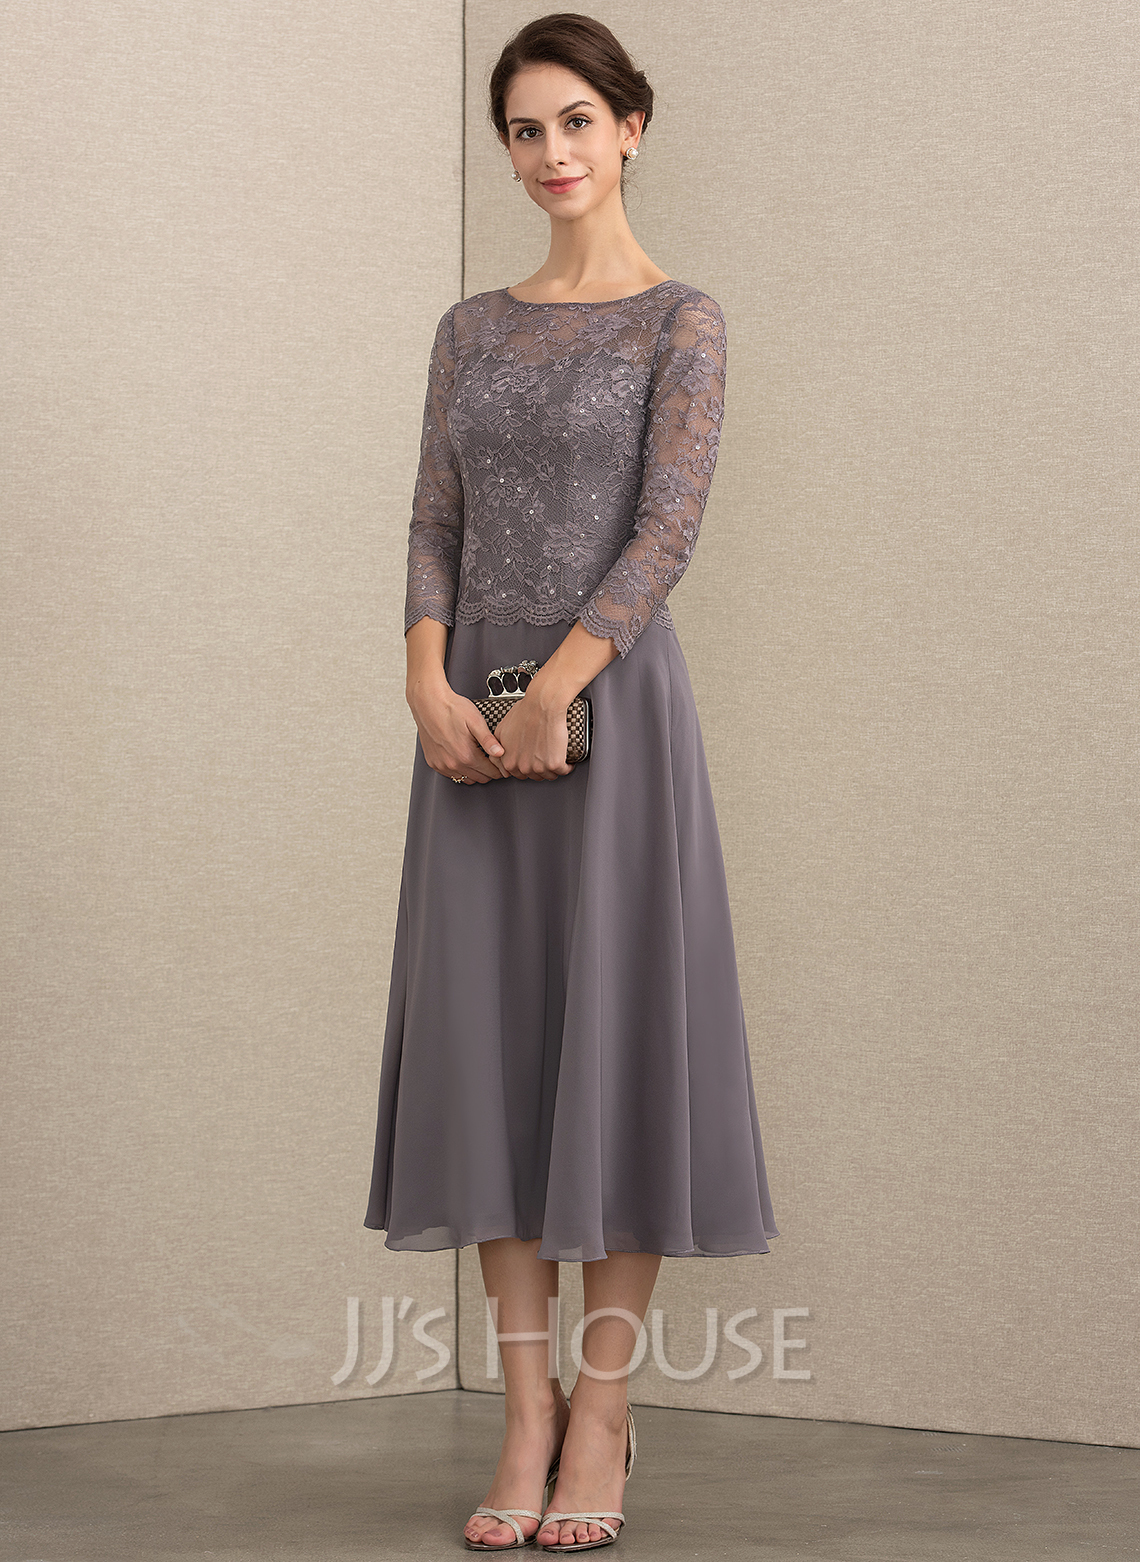 76053026e0 A-Line Scoop Neck Tea-Length Chiffon Lace Mother of the Bride Dress With.  Loading zoom